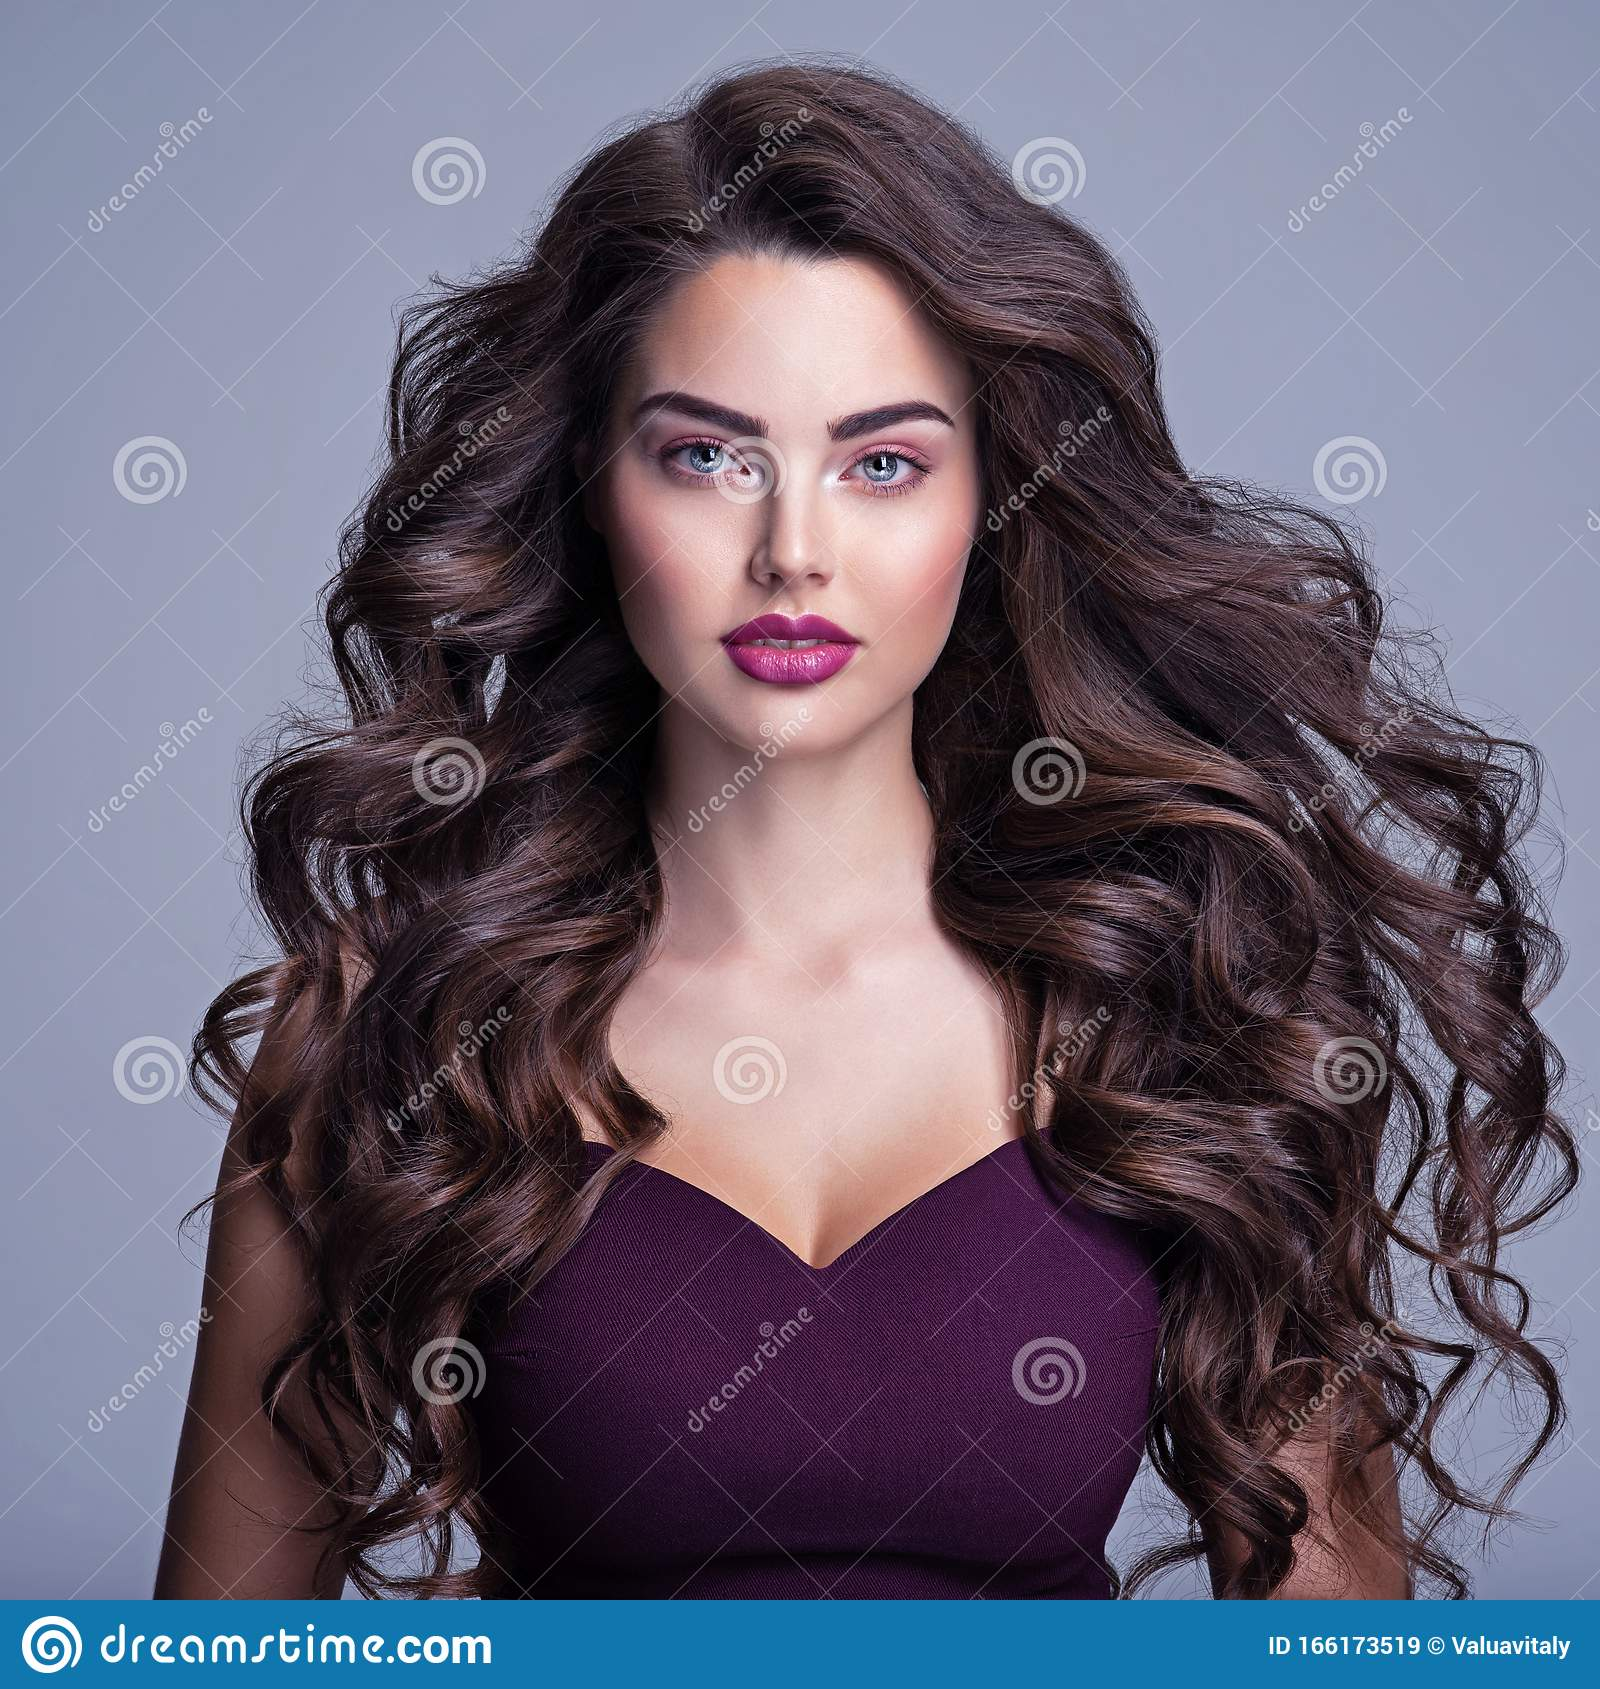 Face Of A Beautiful Woman With Long Brown Curly Hair Fashion Model With Wavy Hairstyle Attractive Young Girl With Curly Hair Stock Image Image Of Black Hair 166173519